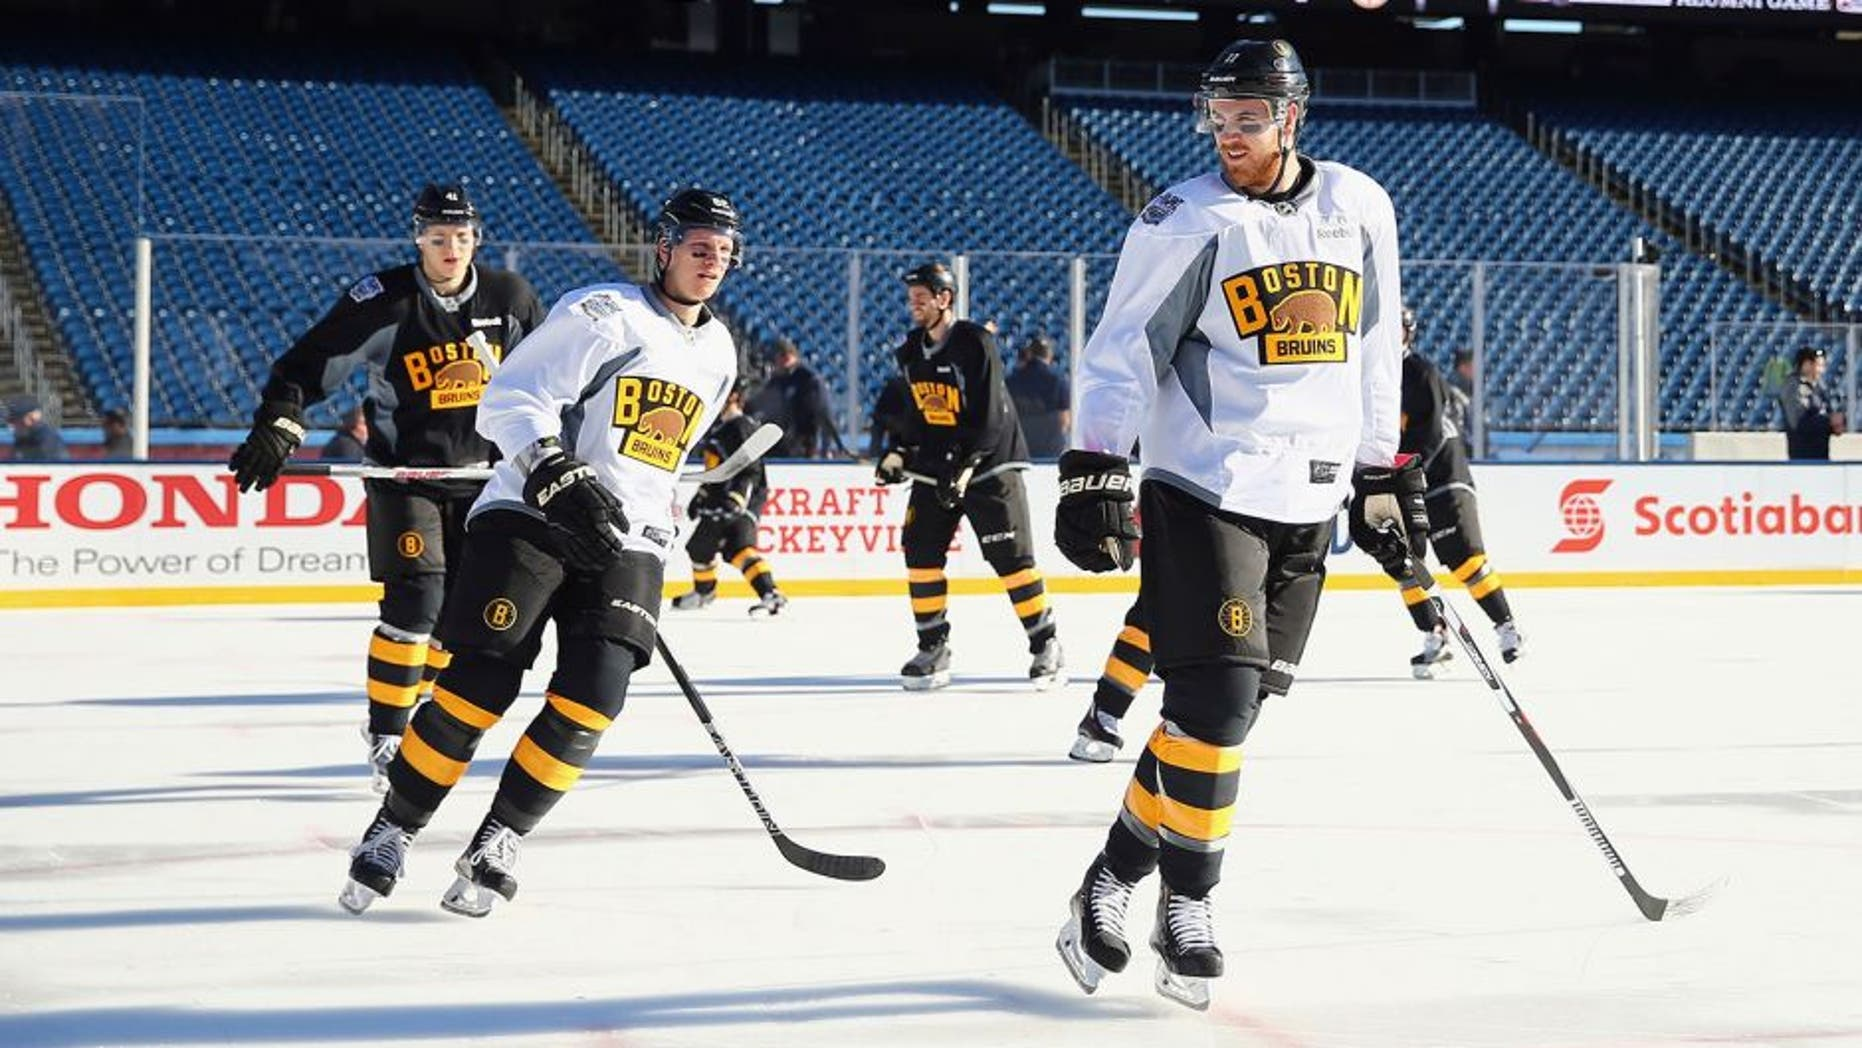 FOXBORO, MA - DECEMBER 31: (l-r) Zach Trotman #62 and Jimmy Hayes #11 of the Boston Bruins skate during the practice session at Gillette Stadium on December 31, 2015 in Foxboro, Massachusetts. (Photo by Maddie Meyer/Getty Images)